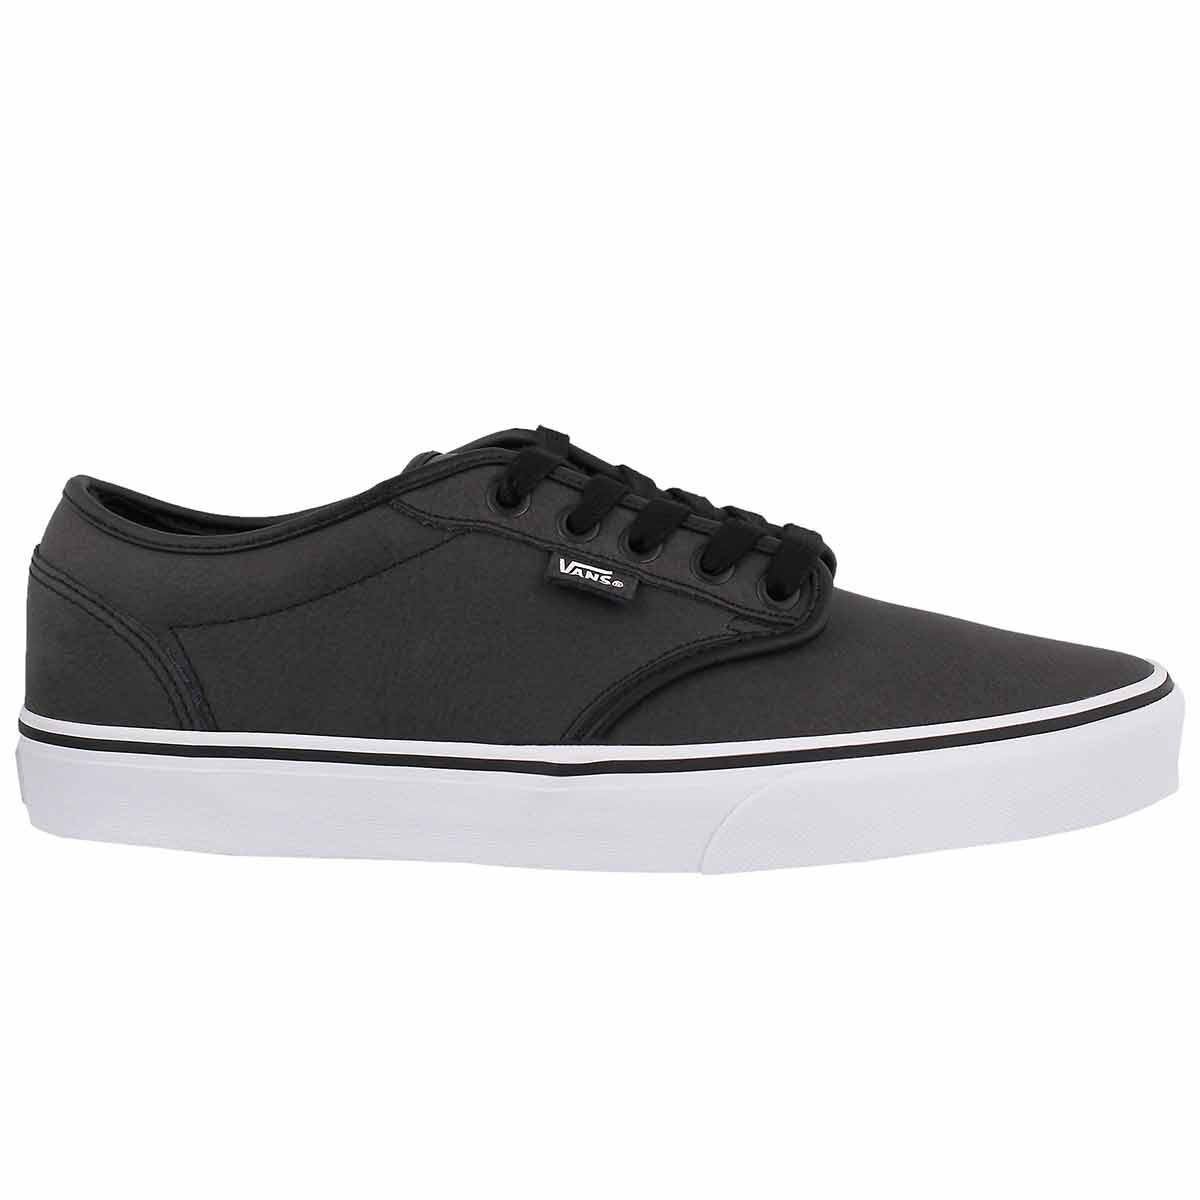 Mns Atwood blk/wht lthr lace up sneaker